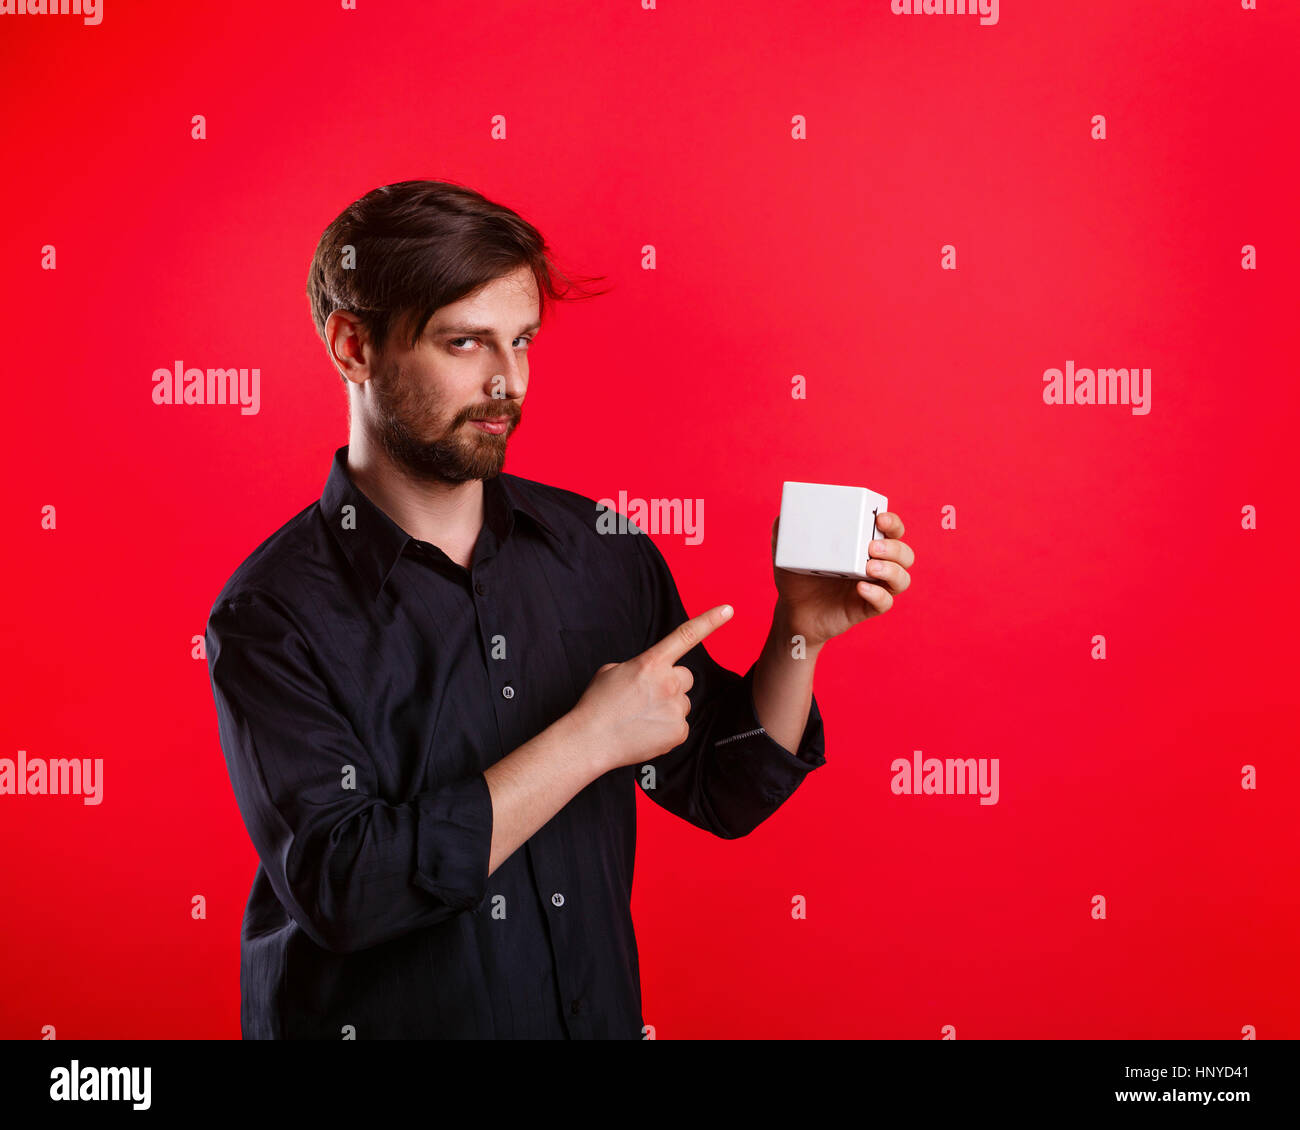 Man holding an empty cube. Advertising Space. Attractive man shows space for copy. Forefinger. Tricky glance - Stock Image